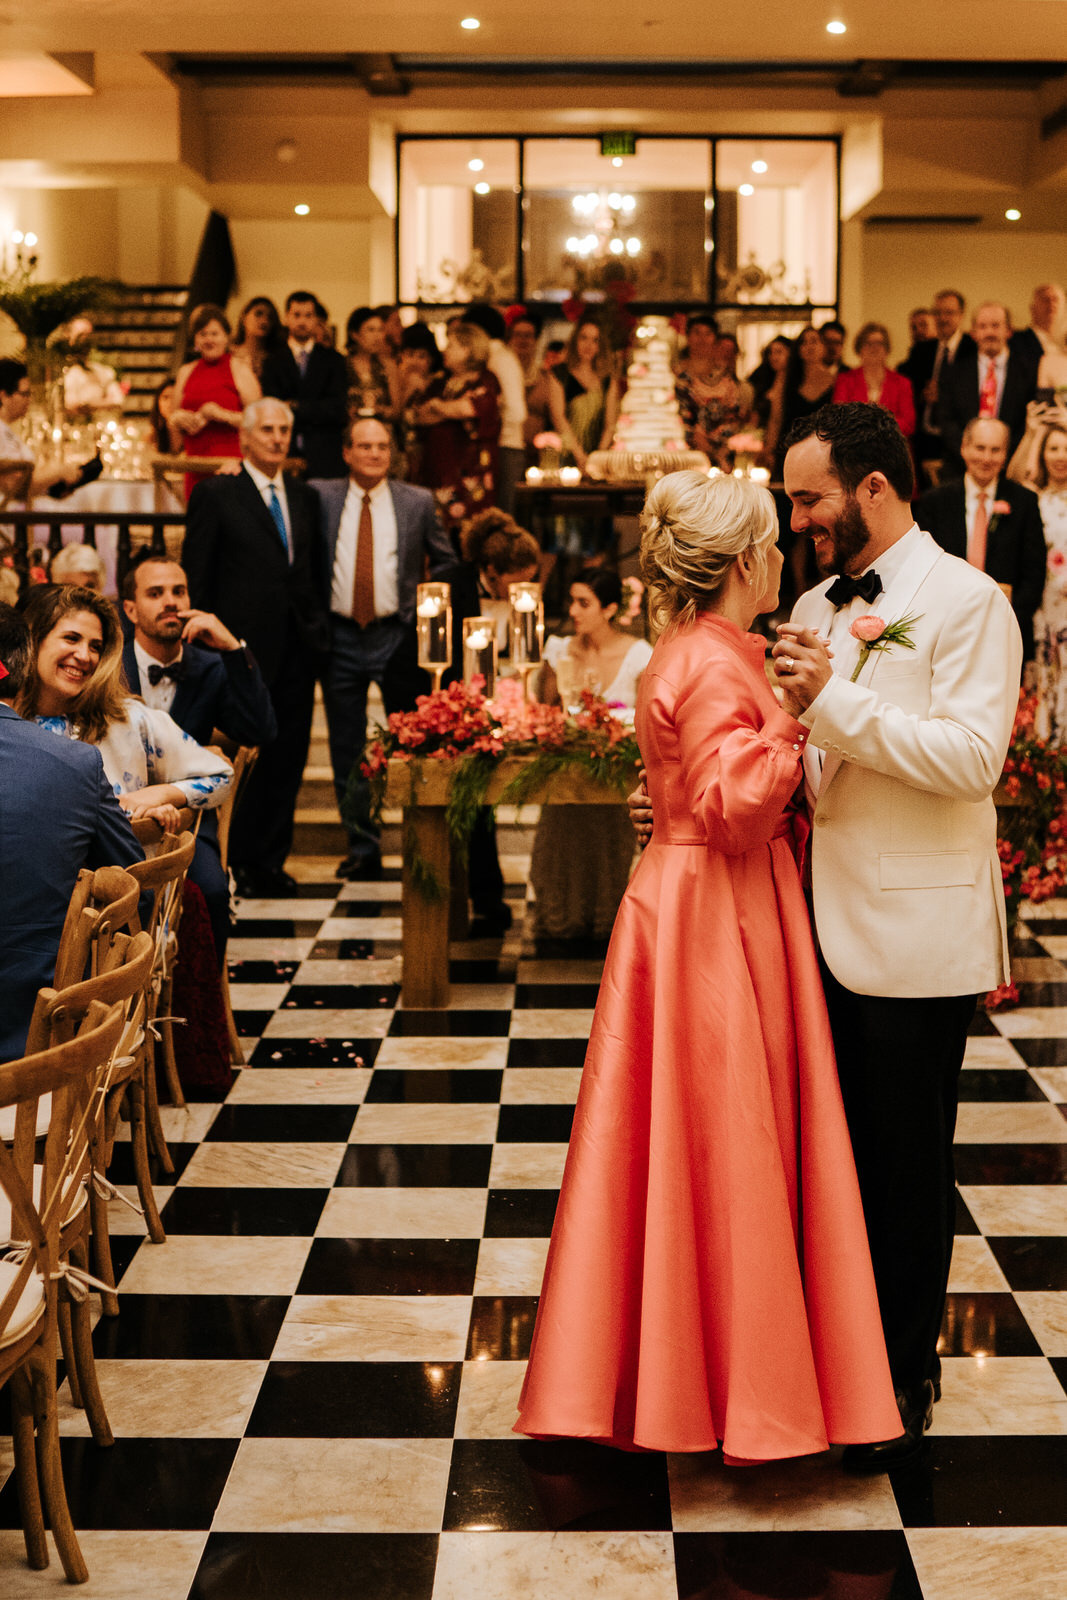 Groom dances with his mother during the wedding reception